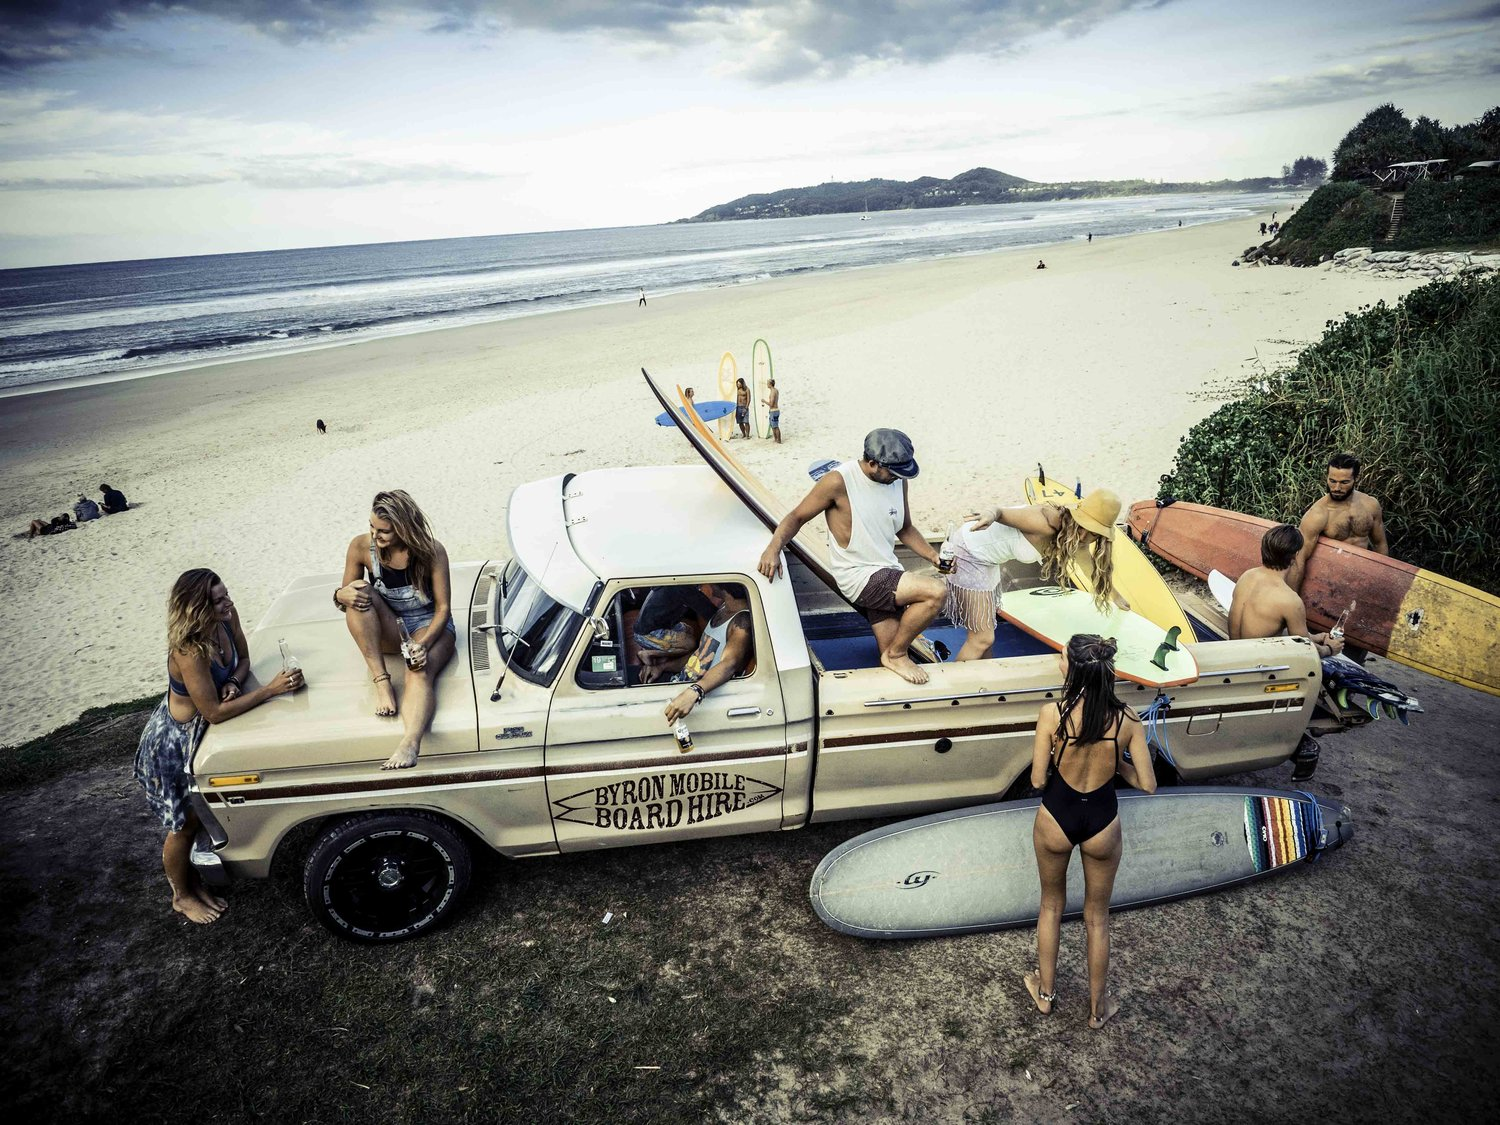 Surfboard Hire in Byron Bay